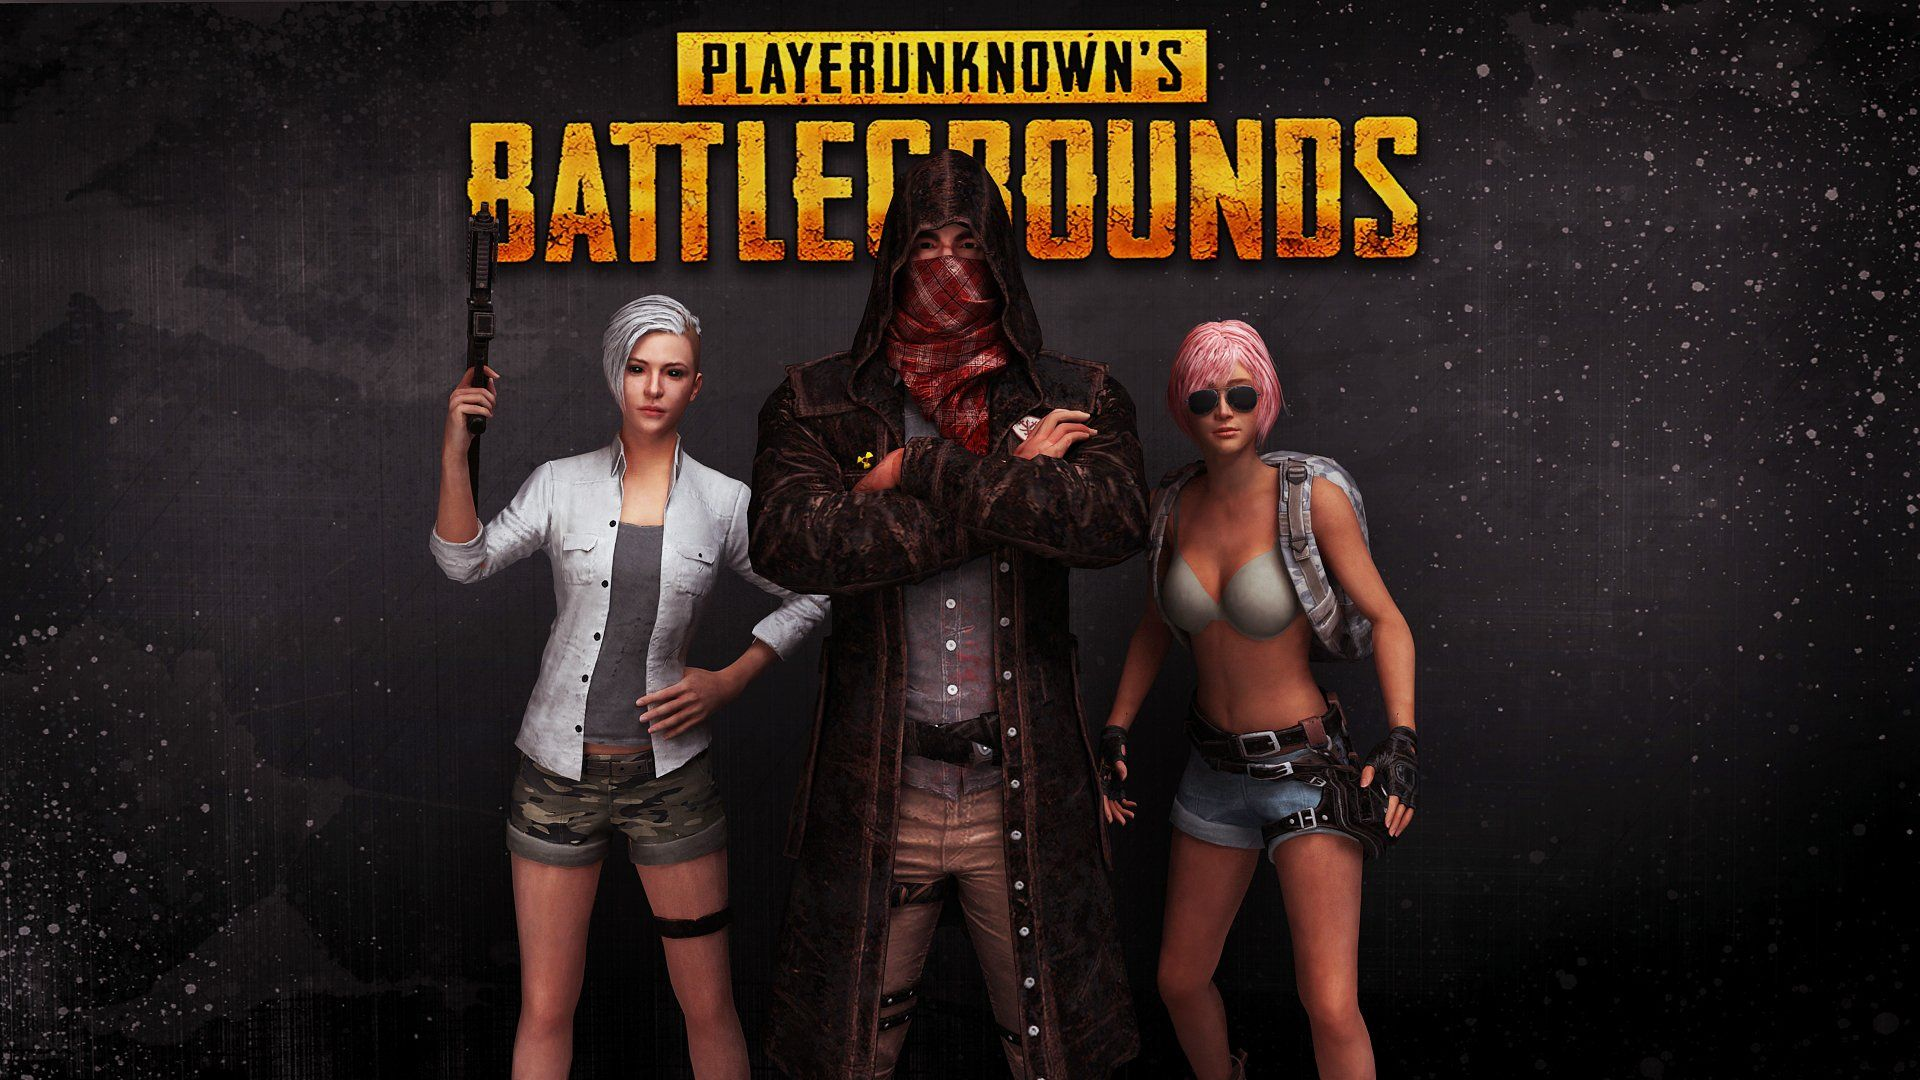 Download 1920x1080 Wallpaper Player Unknown S: Video Game PlayerUnknown's Battlegrounds Wallpaper